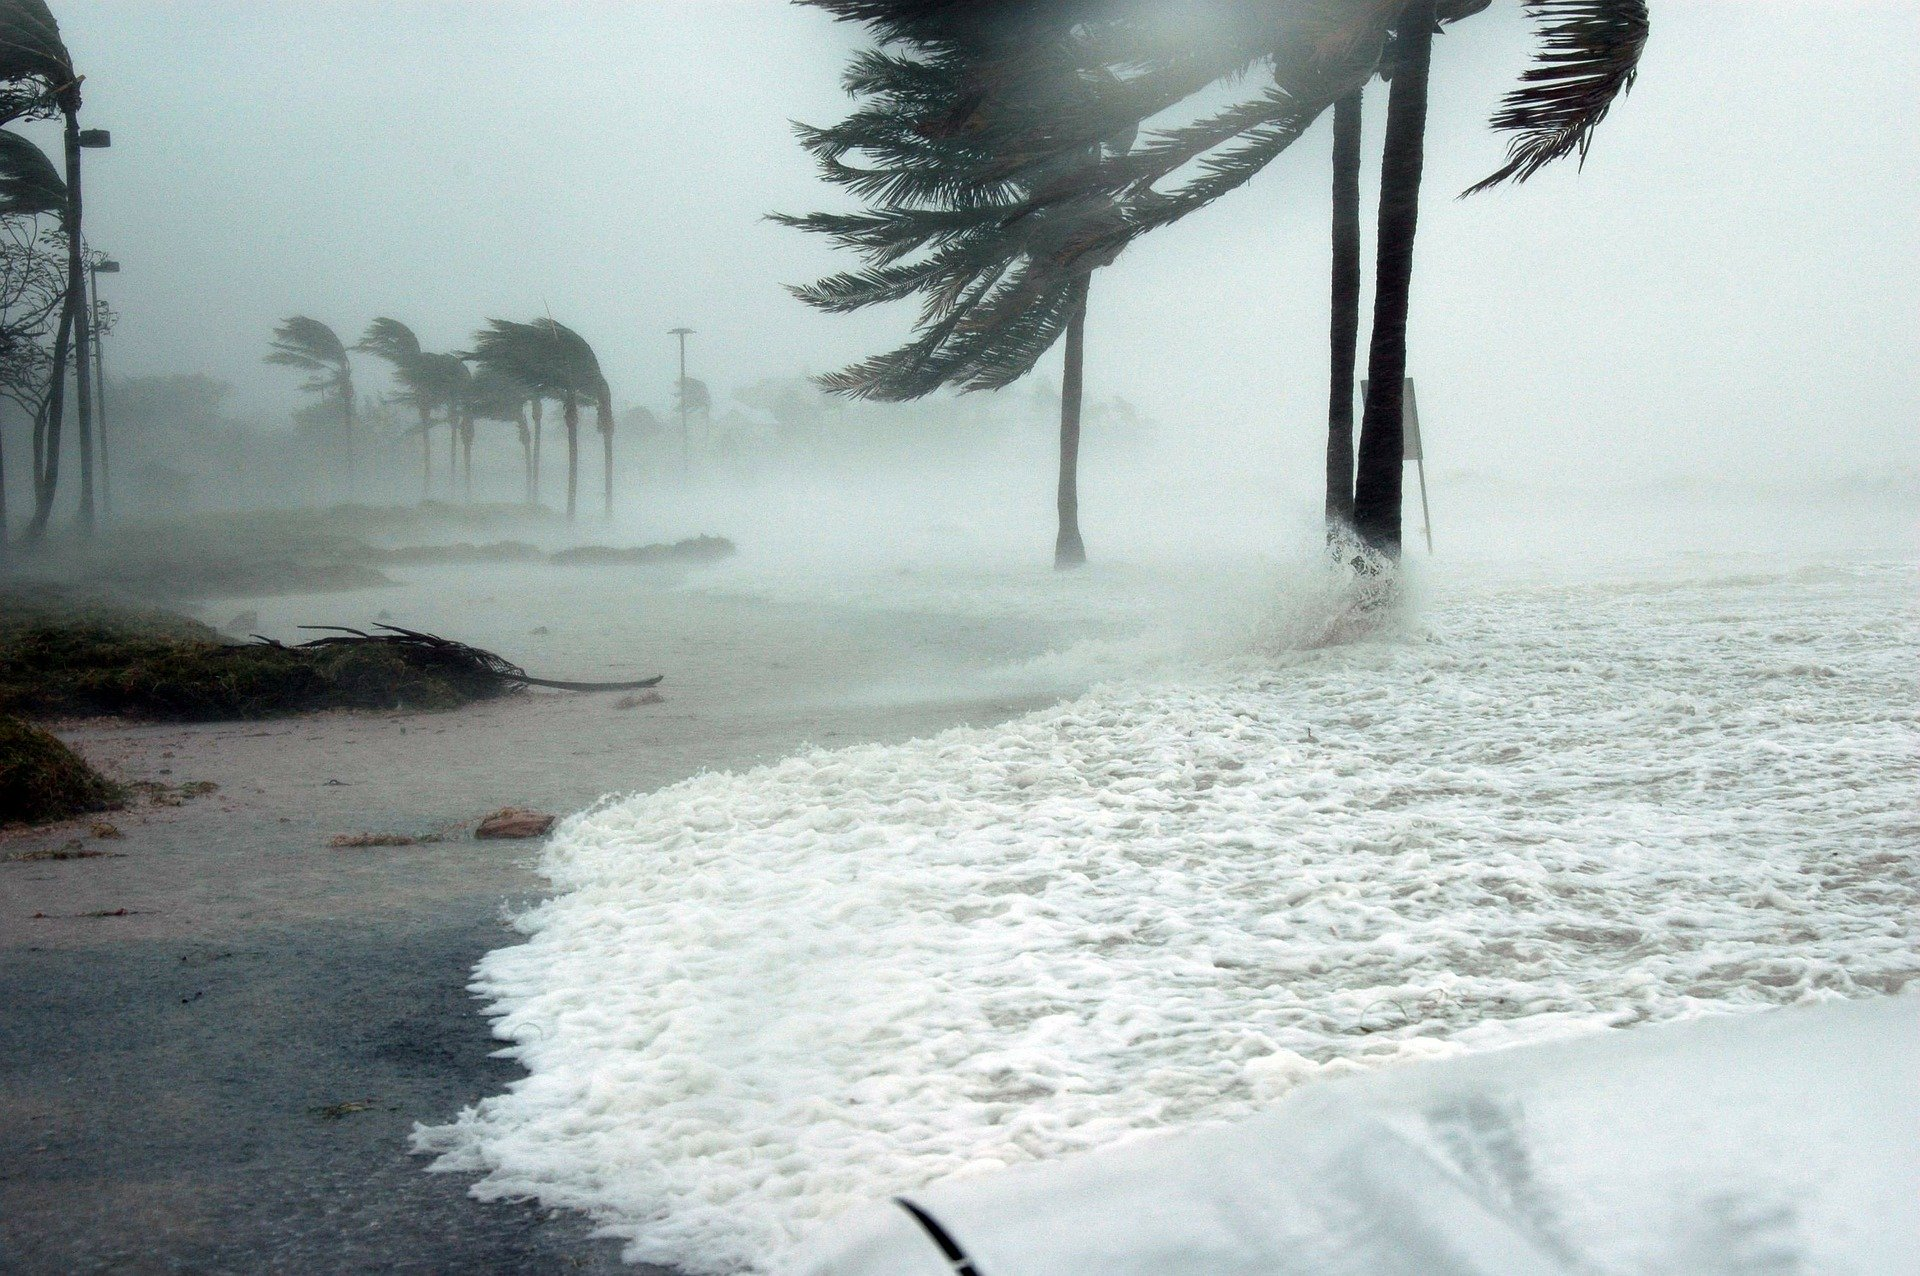 palm trees at coast bend due to strong wind coming from the sea